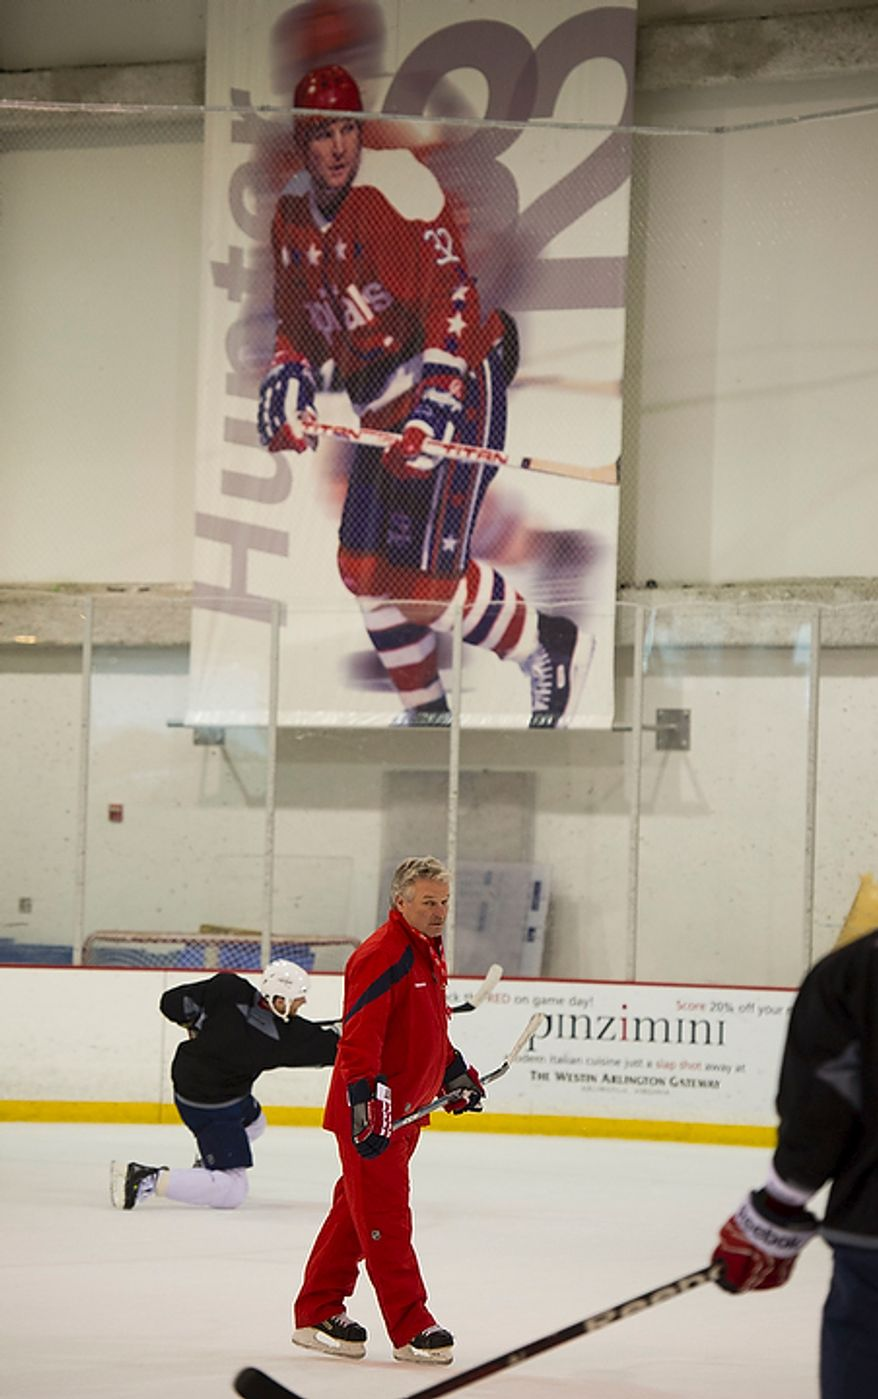 New Washington Capitals Head Coach Dale Hunter skates by a poster of himself when he was a player with the Capitals, as he takes to the ice with his team as they practice together for the first time, at the Kettler Capitals Iceplex in Arlington, Va, Monday, November 28, 2011. (Rod Lamkey Jr/ The Washington Times)